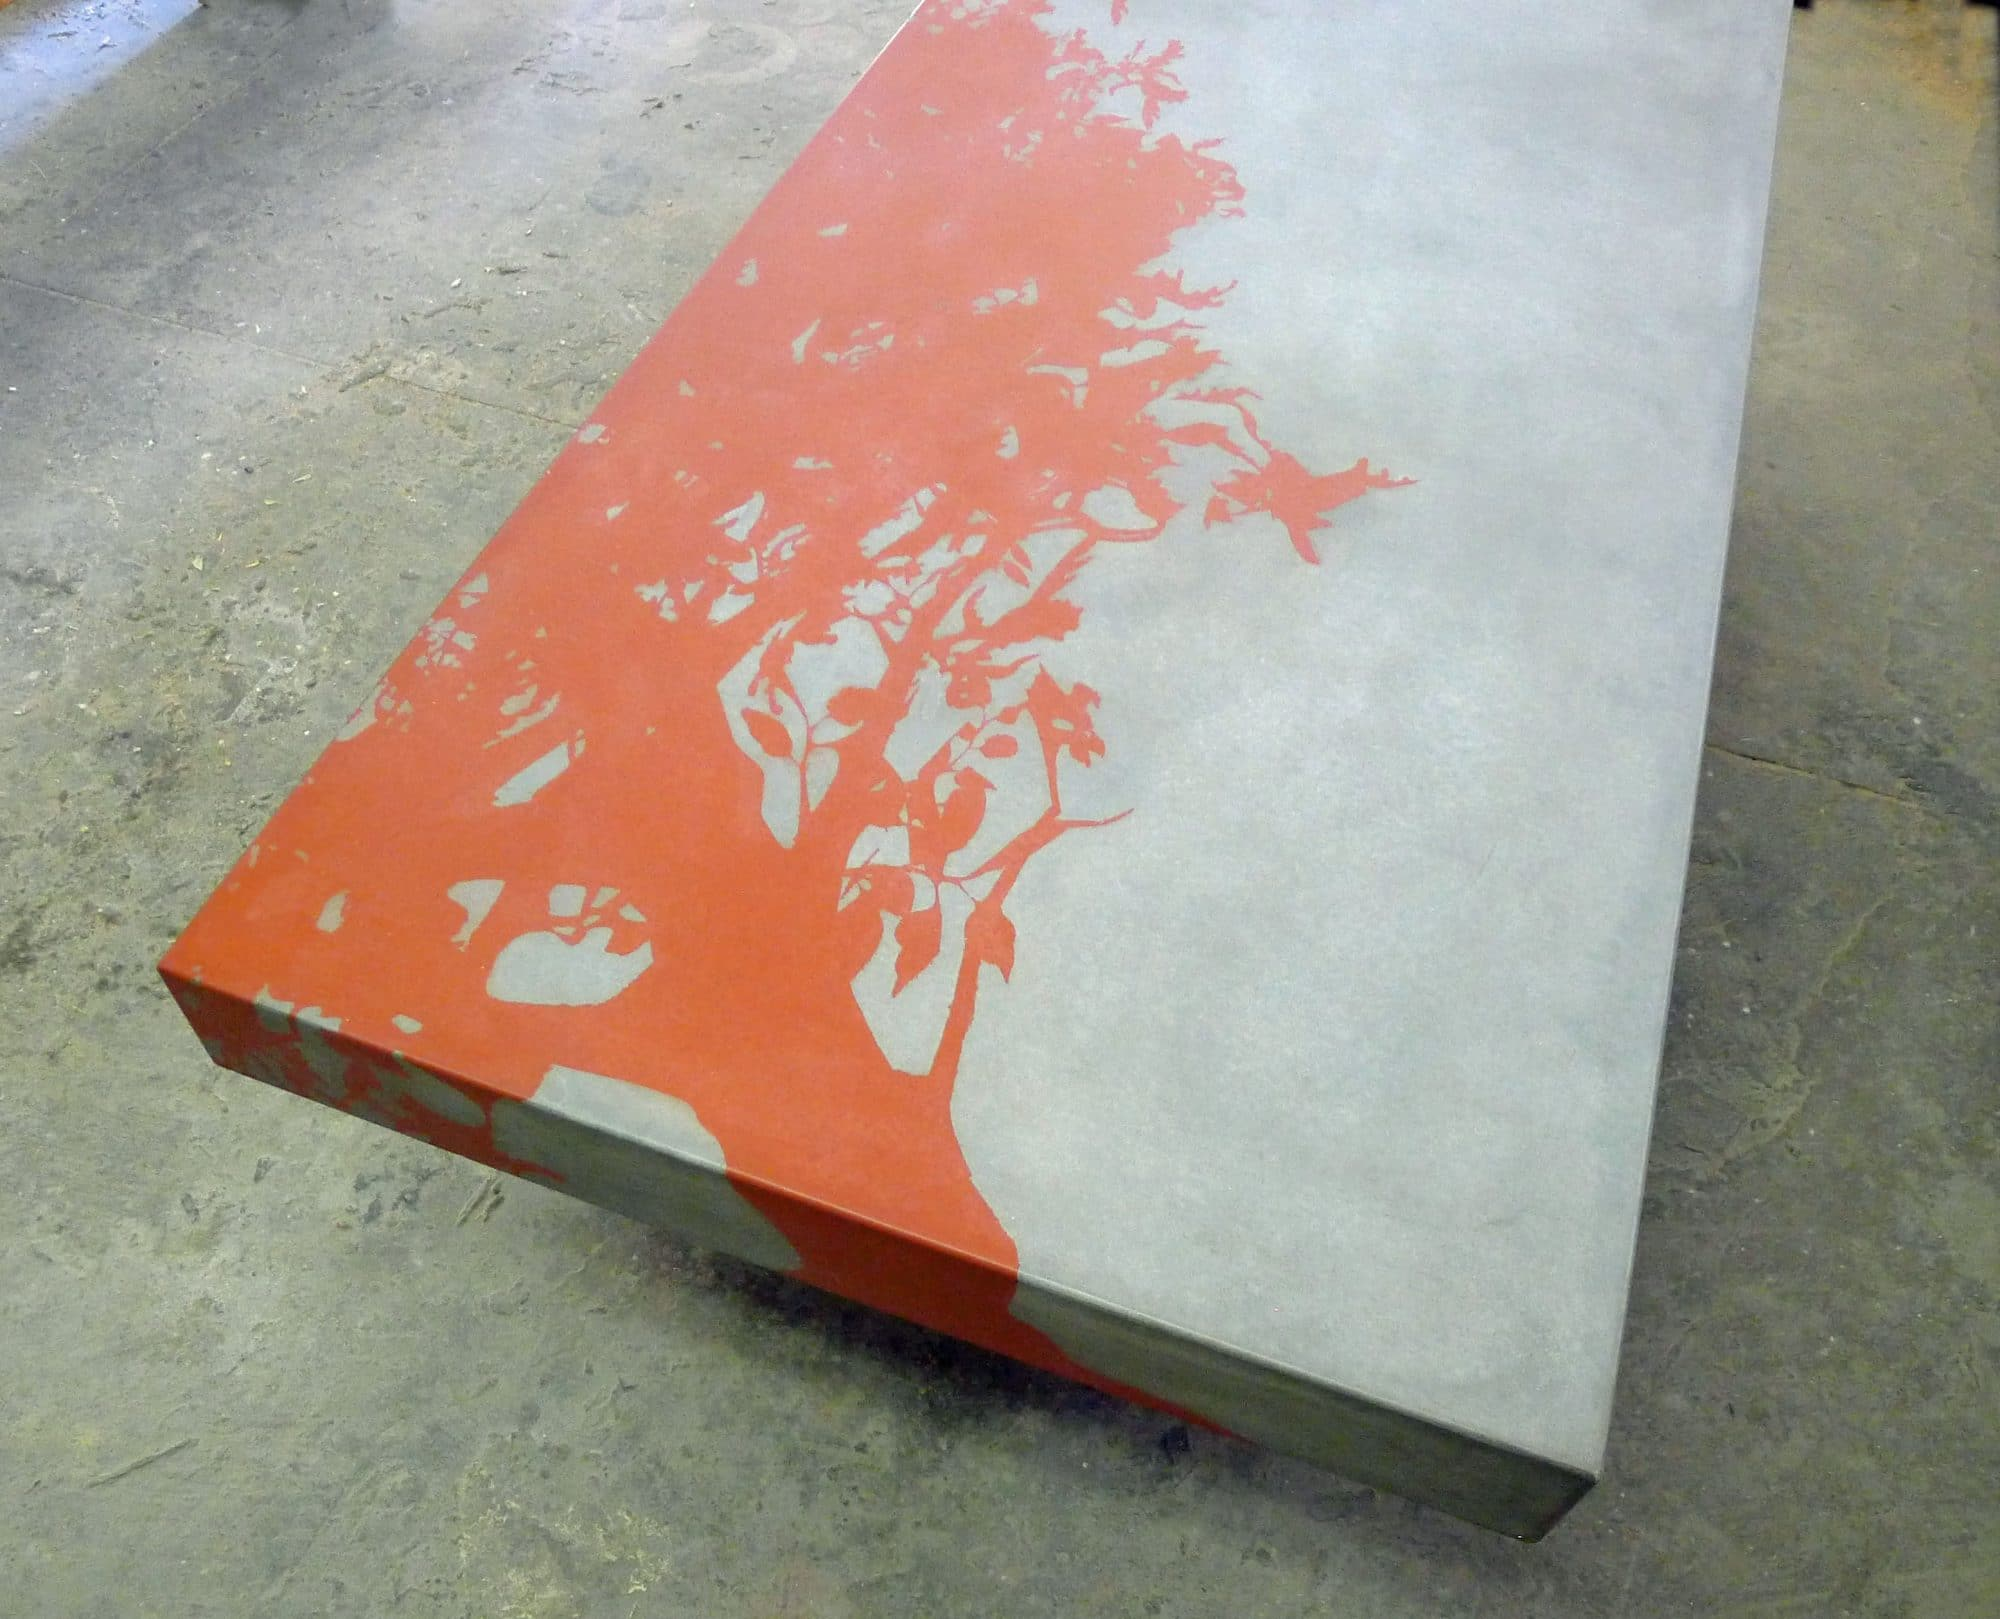 Concrete Pete Parallam table : parallam tabler 2 from www.concretepete.com size 2000 x 1619 jpeg 228kB